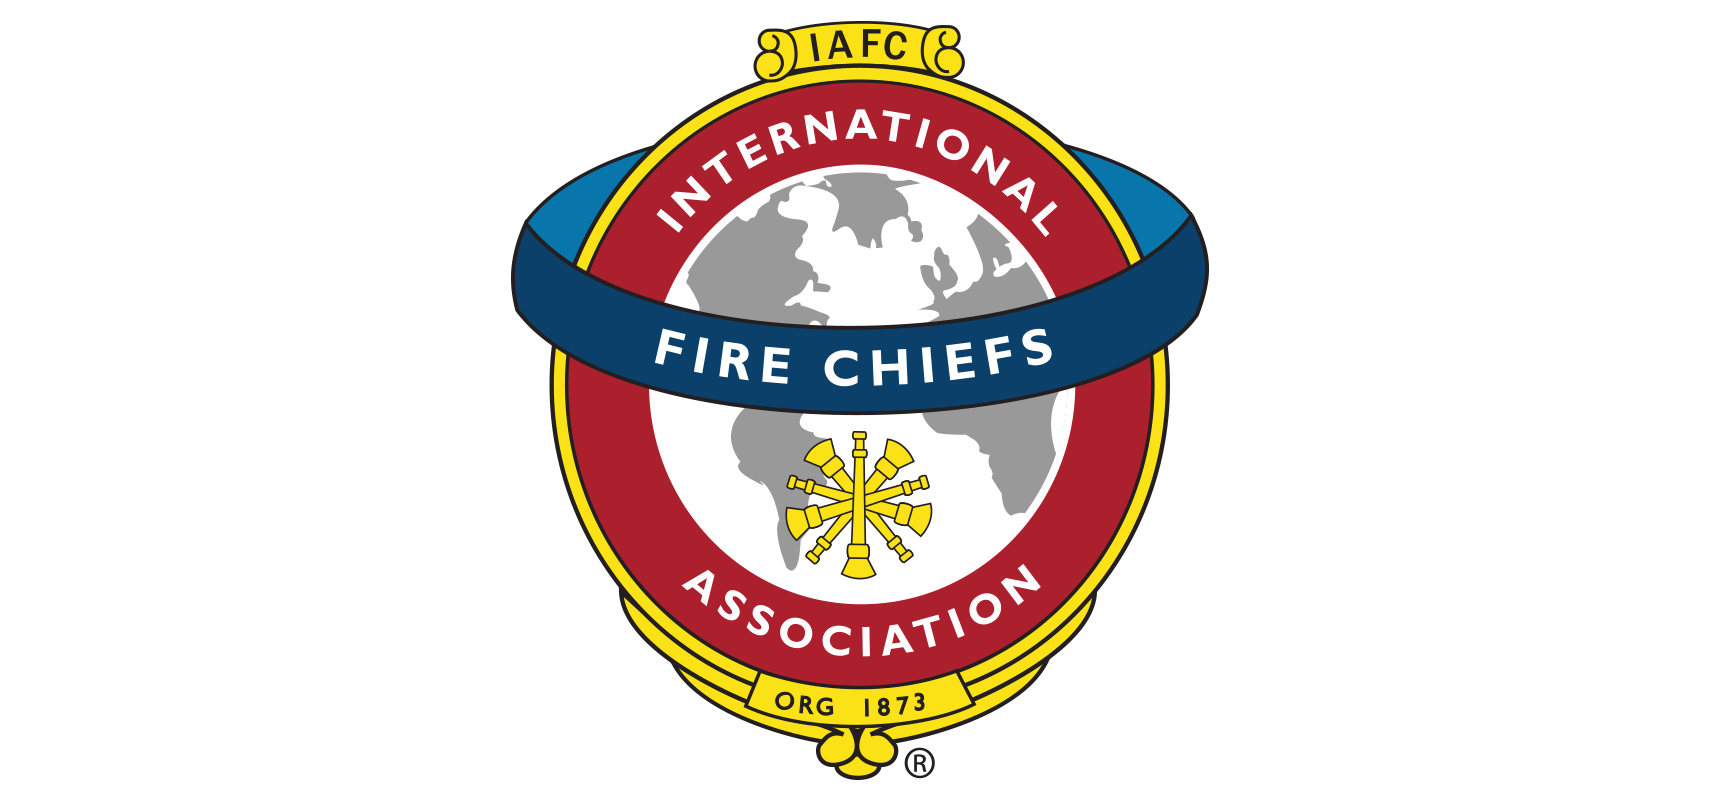 The-IAFC-and-Pierce-Manufacturing-Honor-2017-Volunteer-and-Career-Fire-Chiefs-of-the-Year_Header